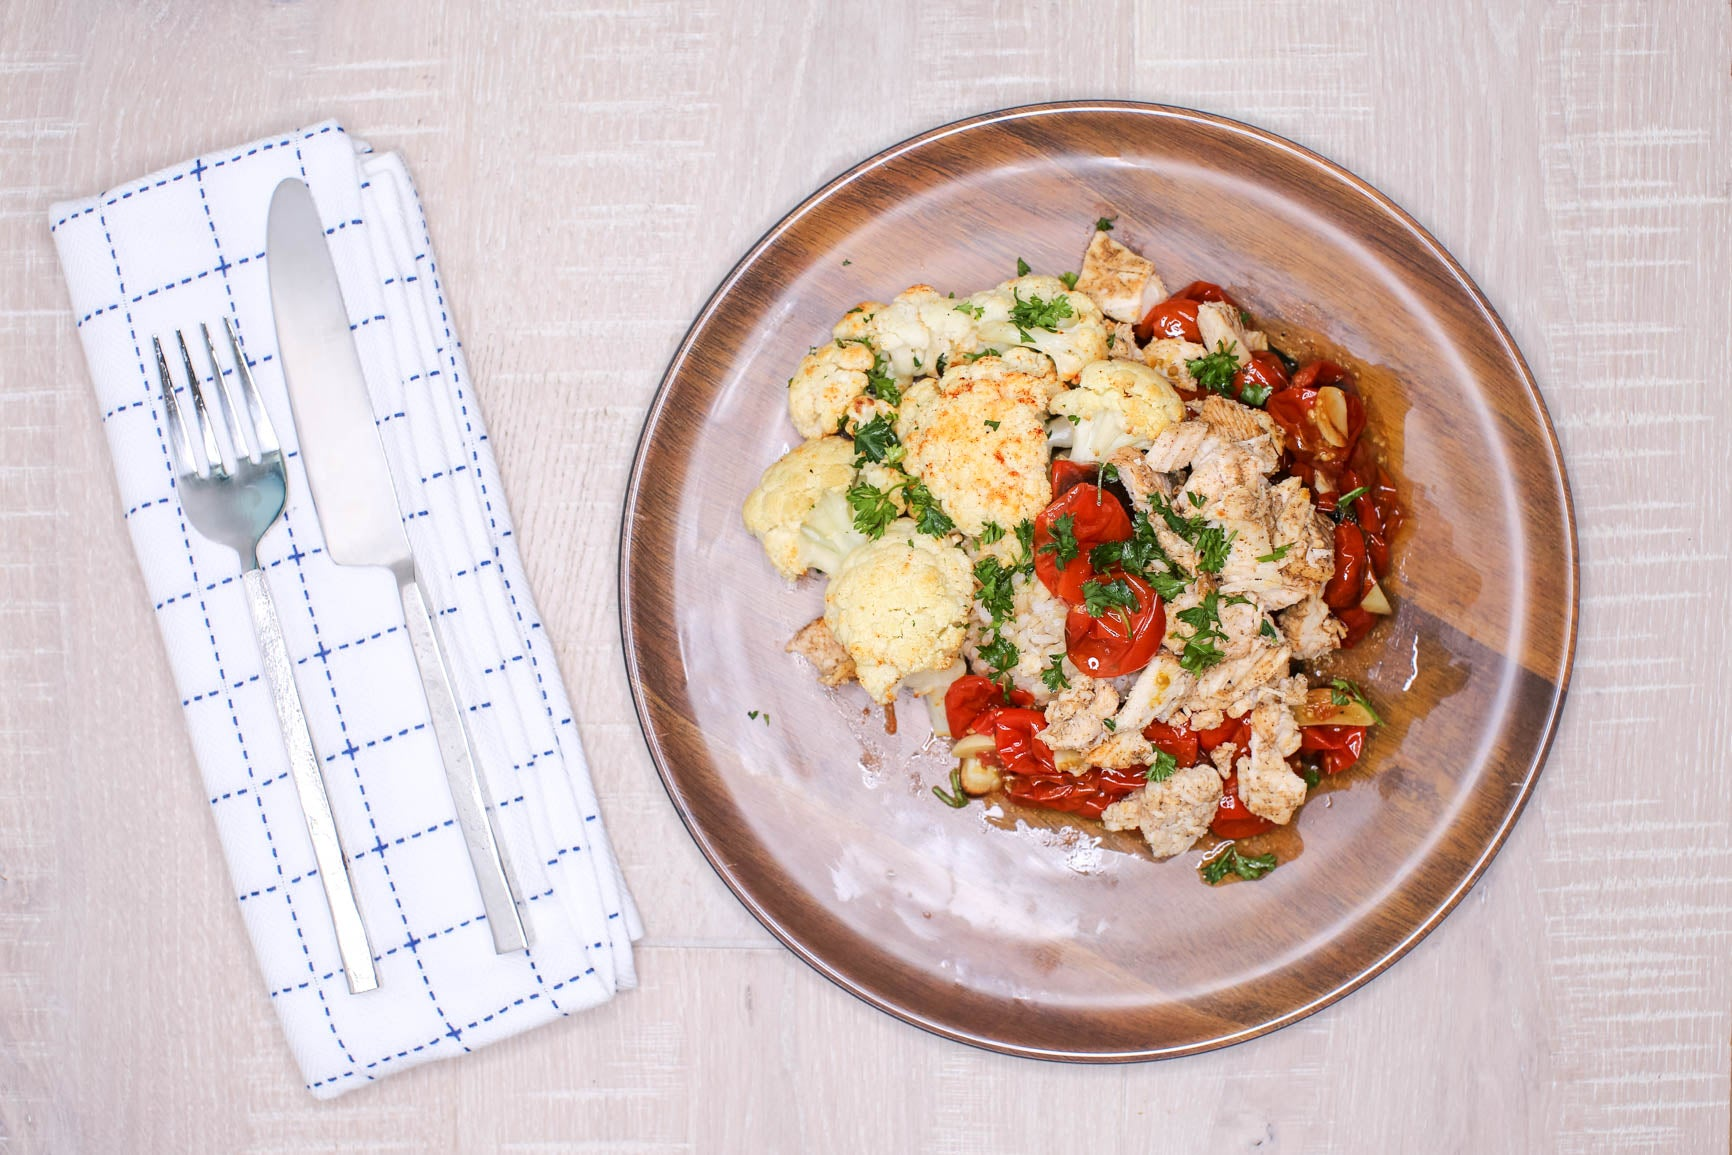 *NEW* Slow Roasted Tomatoes & Herbed Cauliflower w/ Chicken